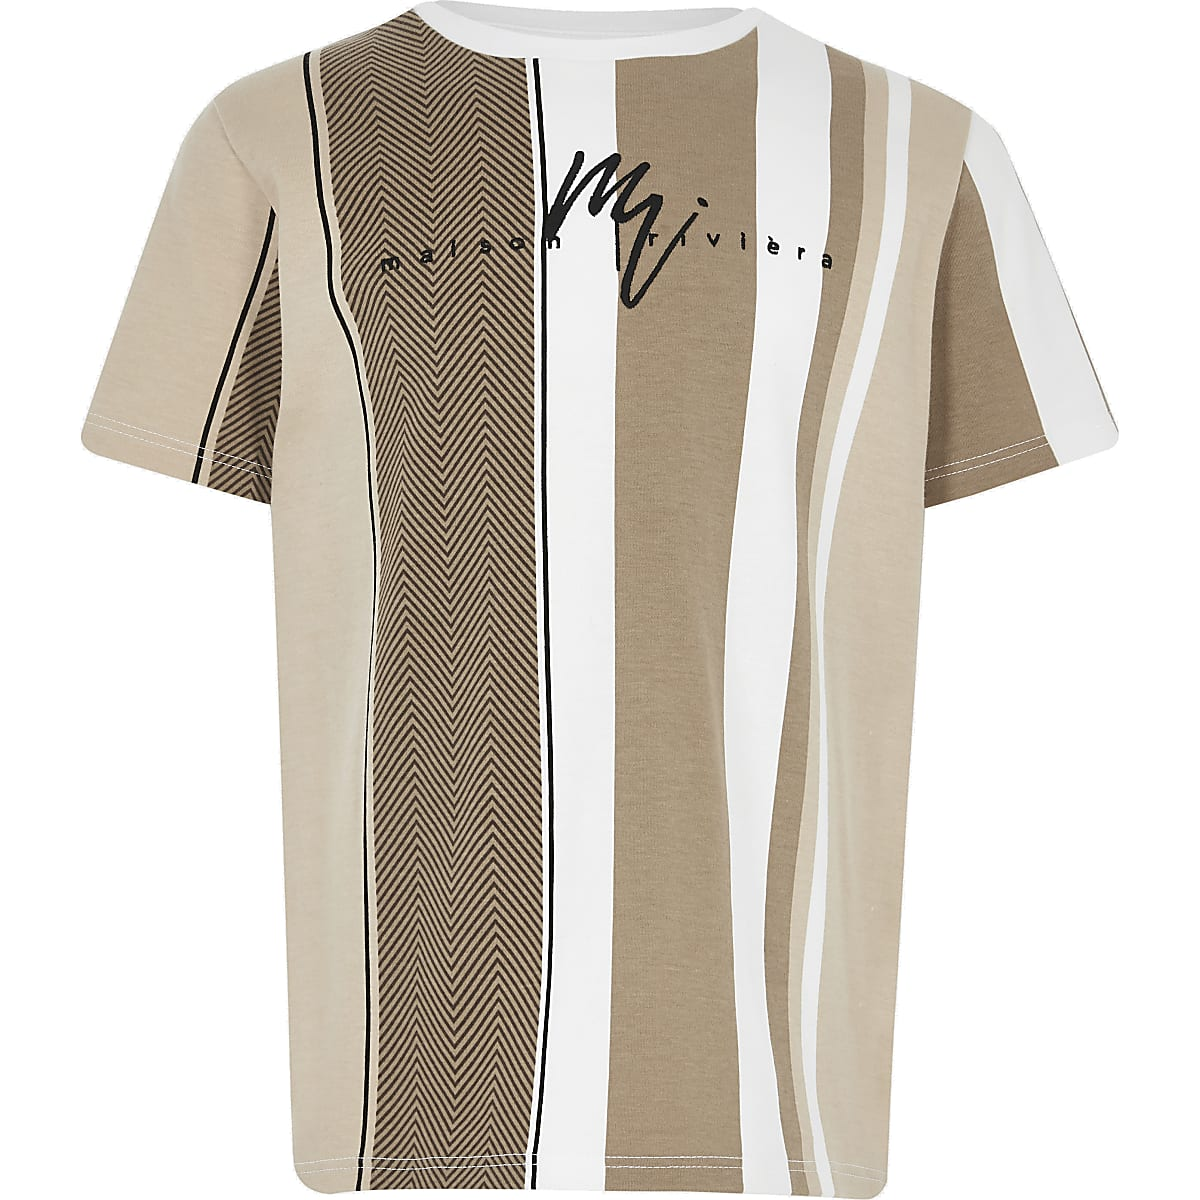 Boys tan herringbone stripe T-shirt